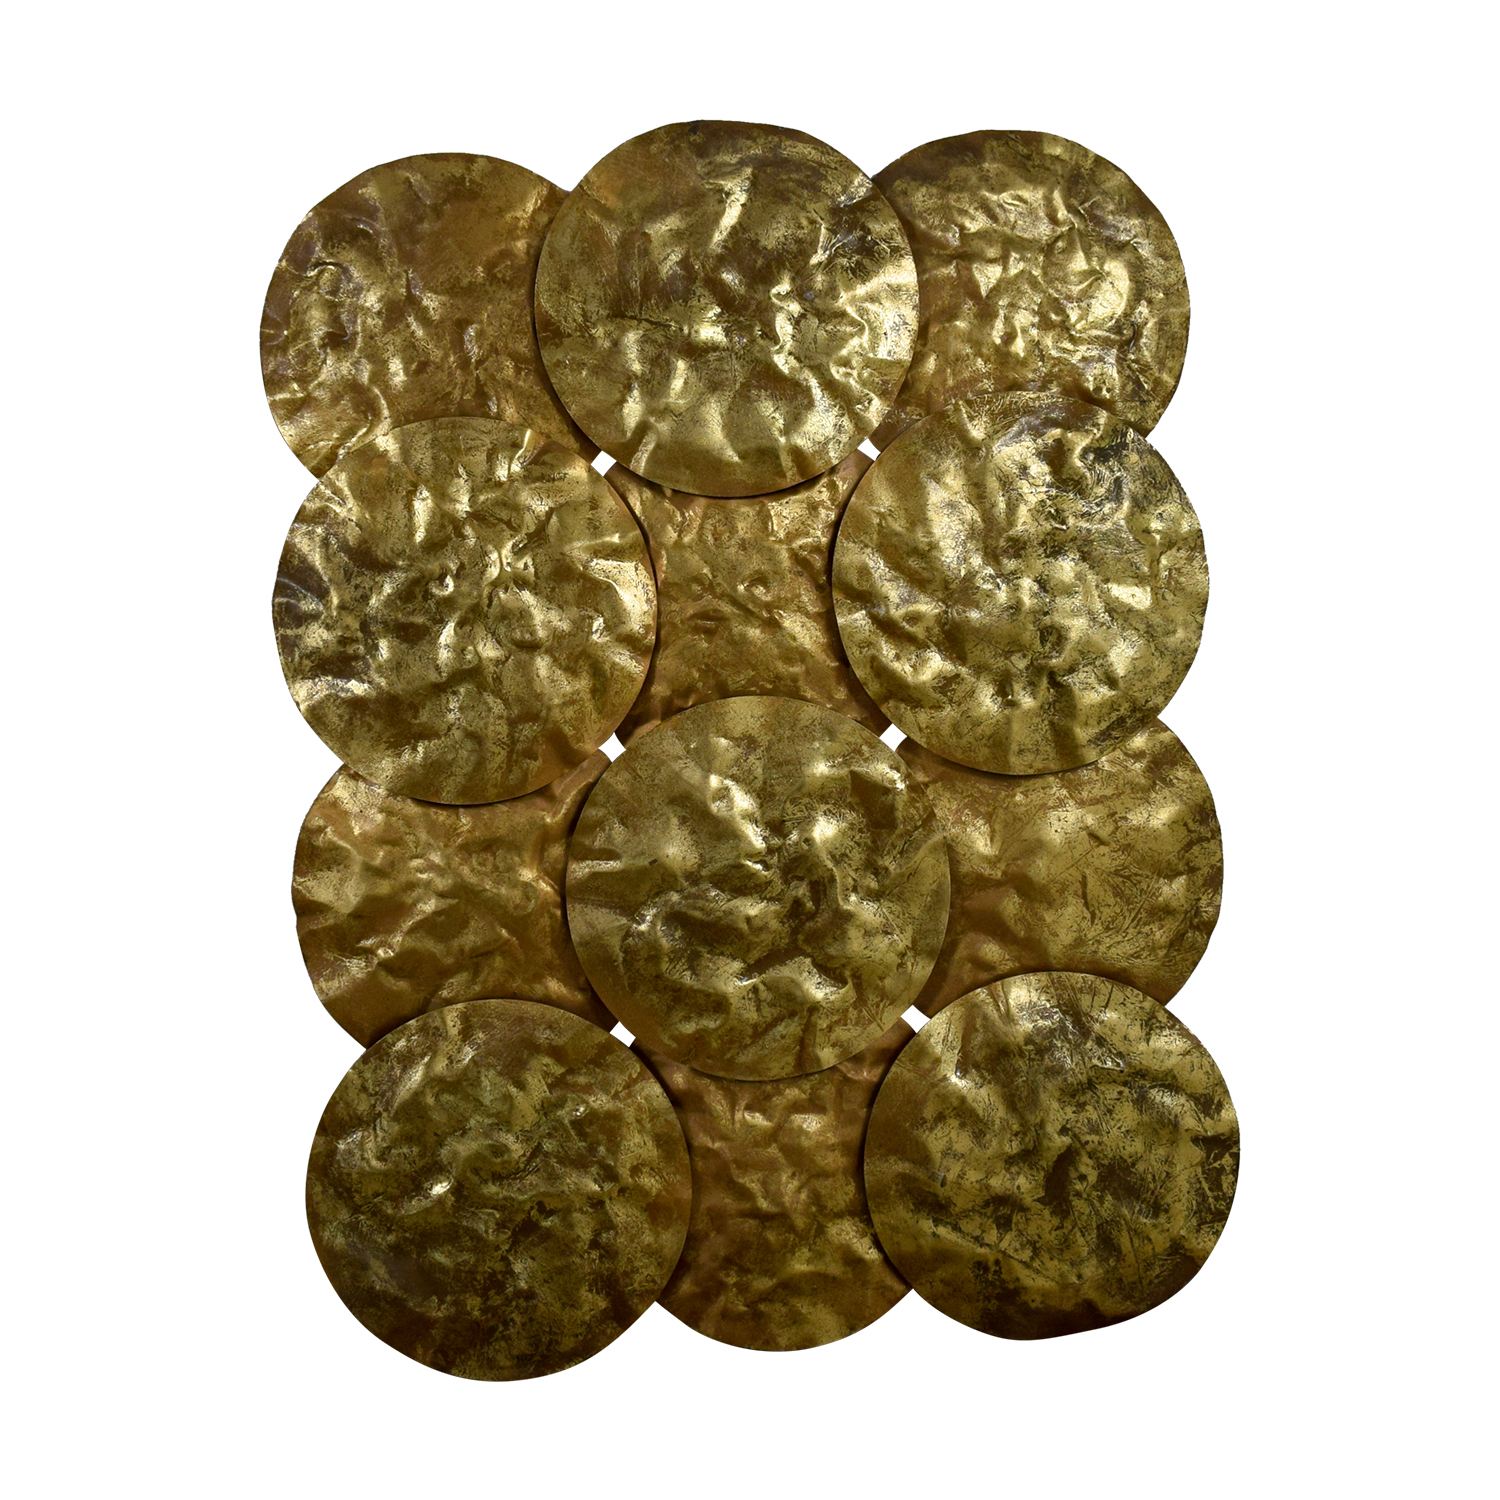 Gold Disks Wall Collage Decorative Accents